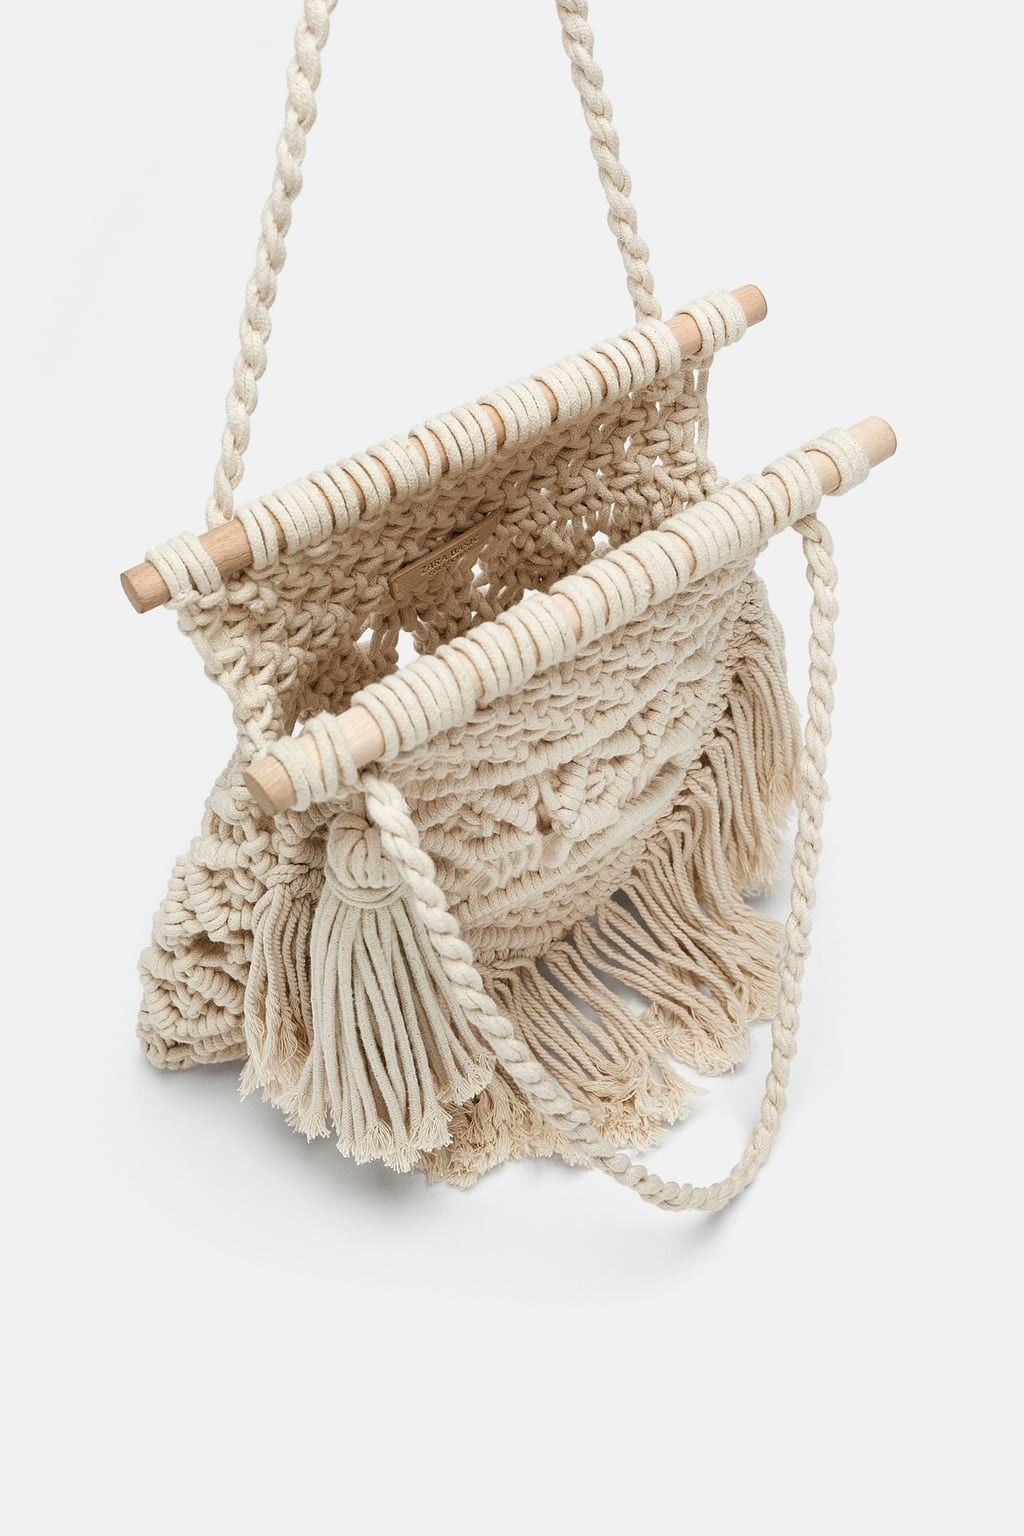 Macrame bag zara photoshoot ideas pinterest macrame bag